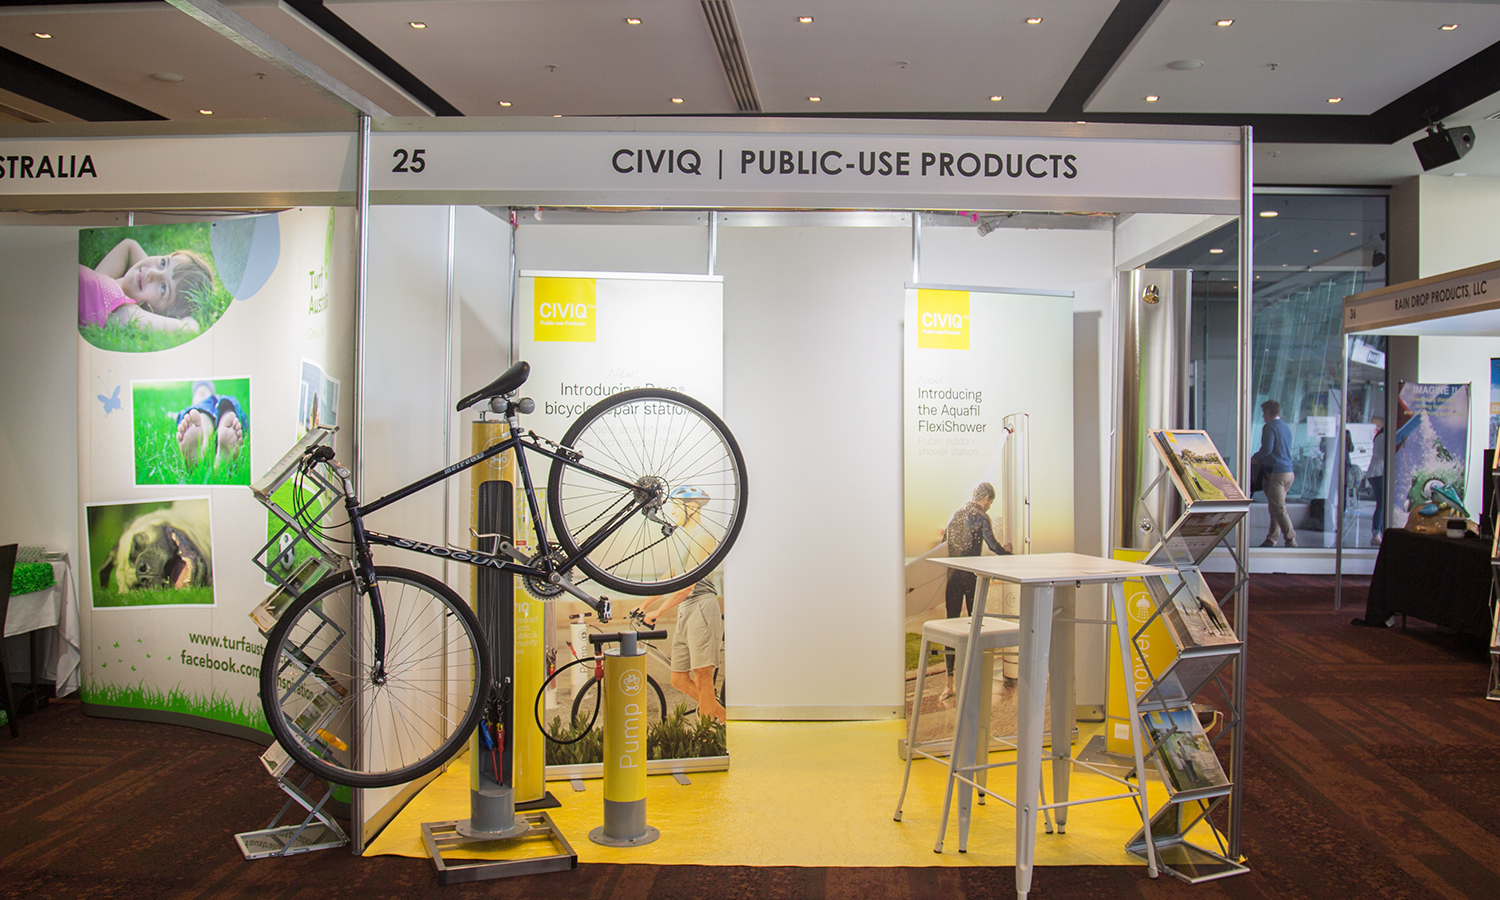 CIVIQ stand at the Parks & Leisure Australia Congress Exhibiting New Outdoor Shower and Bike Repair Products